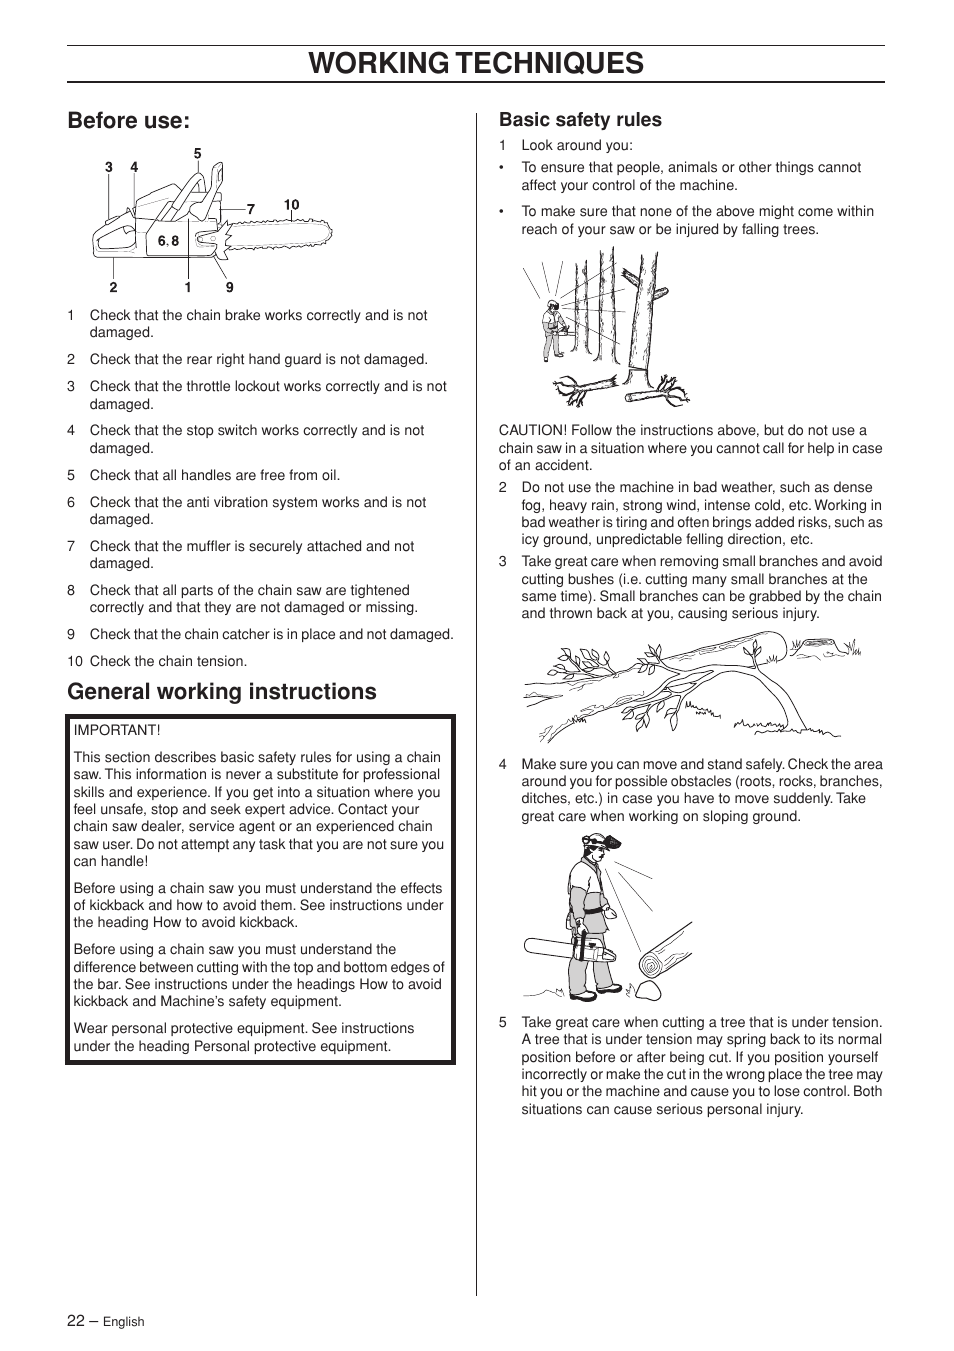 Before use, General working instructions, Basic safety rules | Working  techniques | Husqvarna 372XP